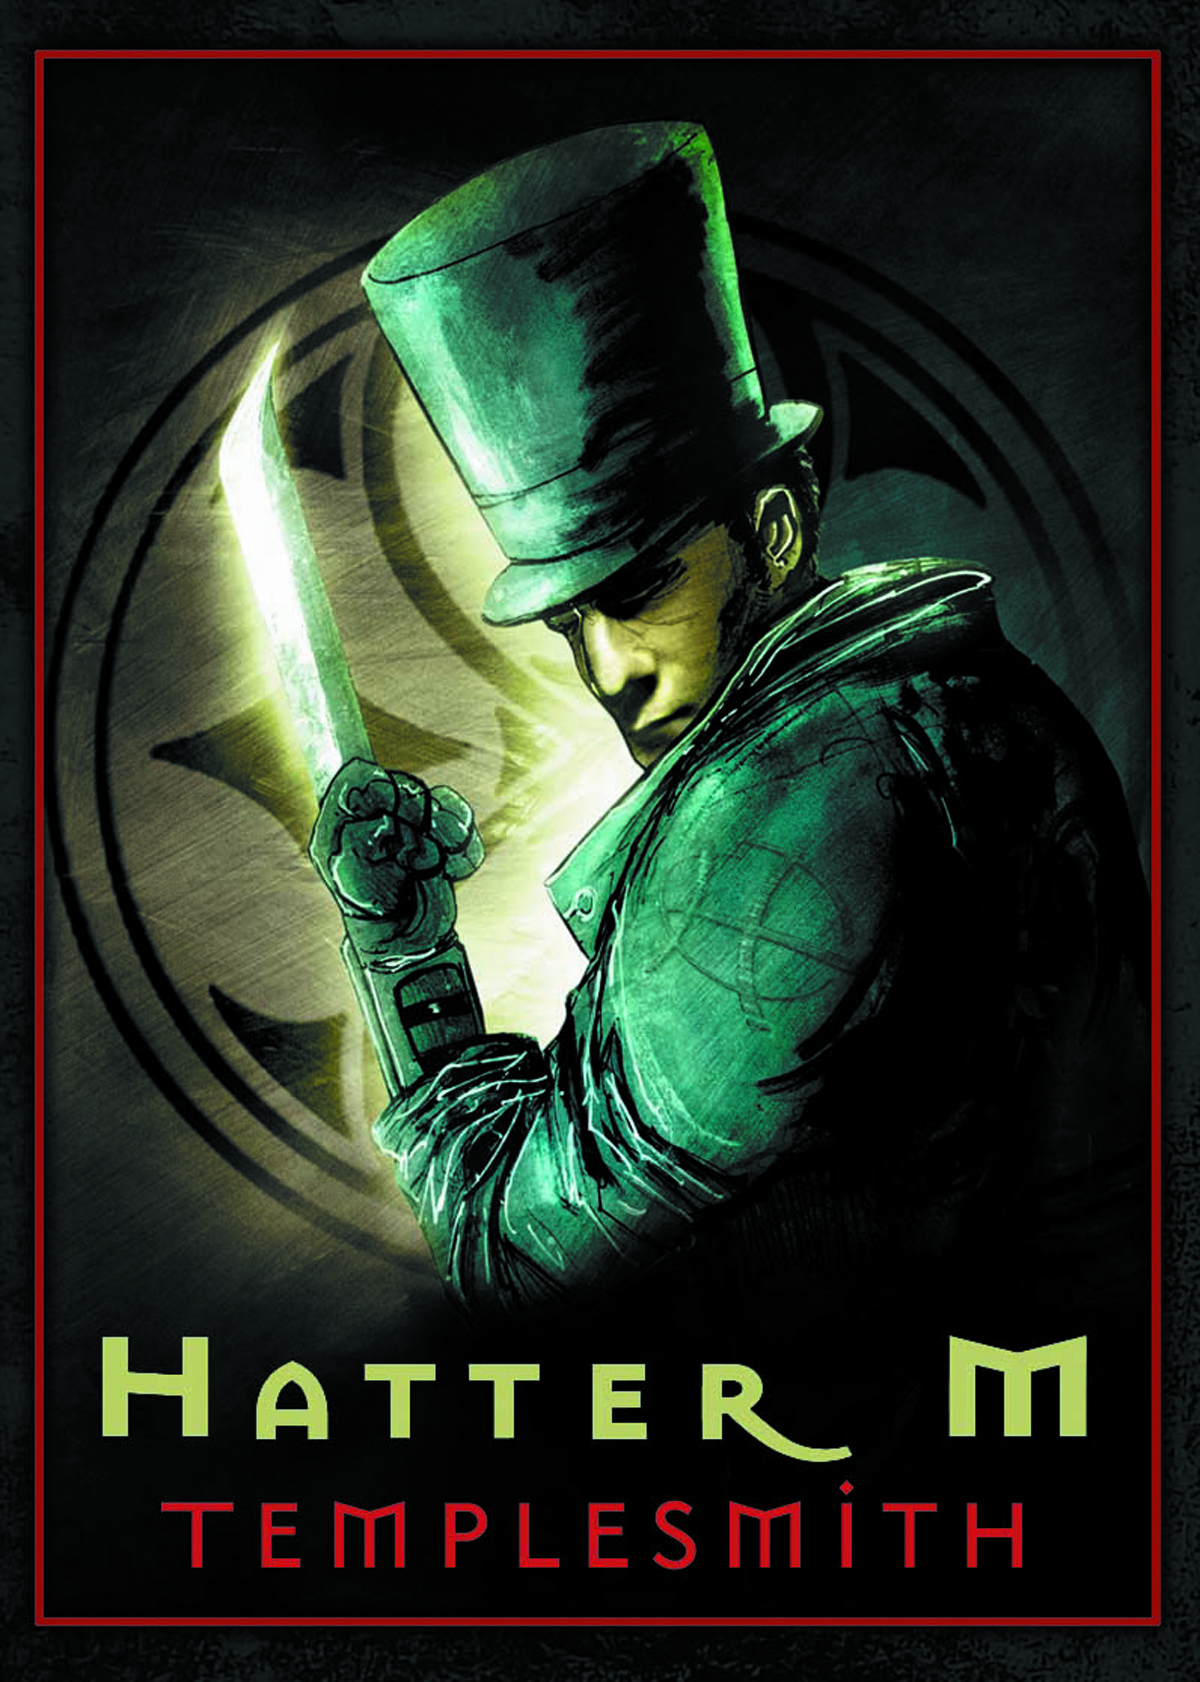 HATTER M 10TH ANN COLL PLAYING CARDS